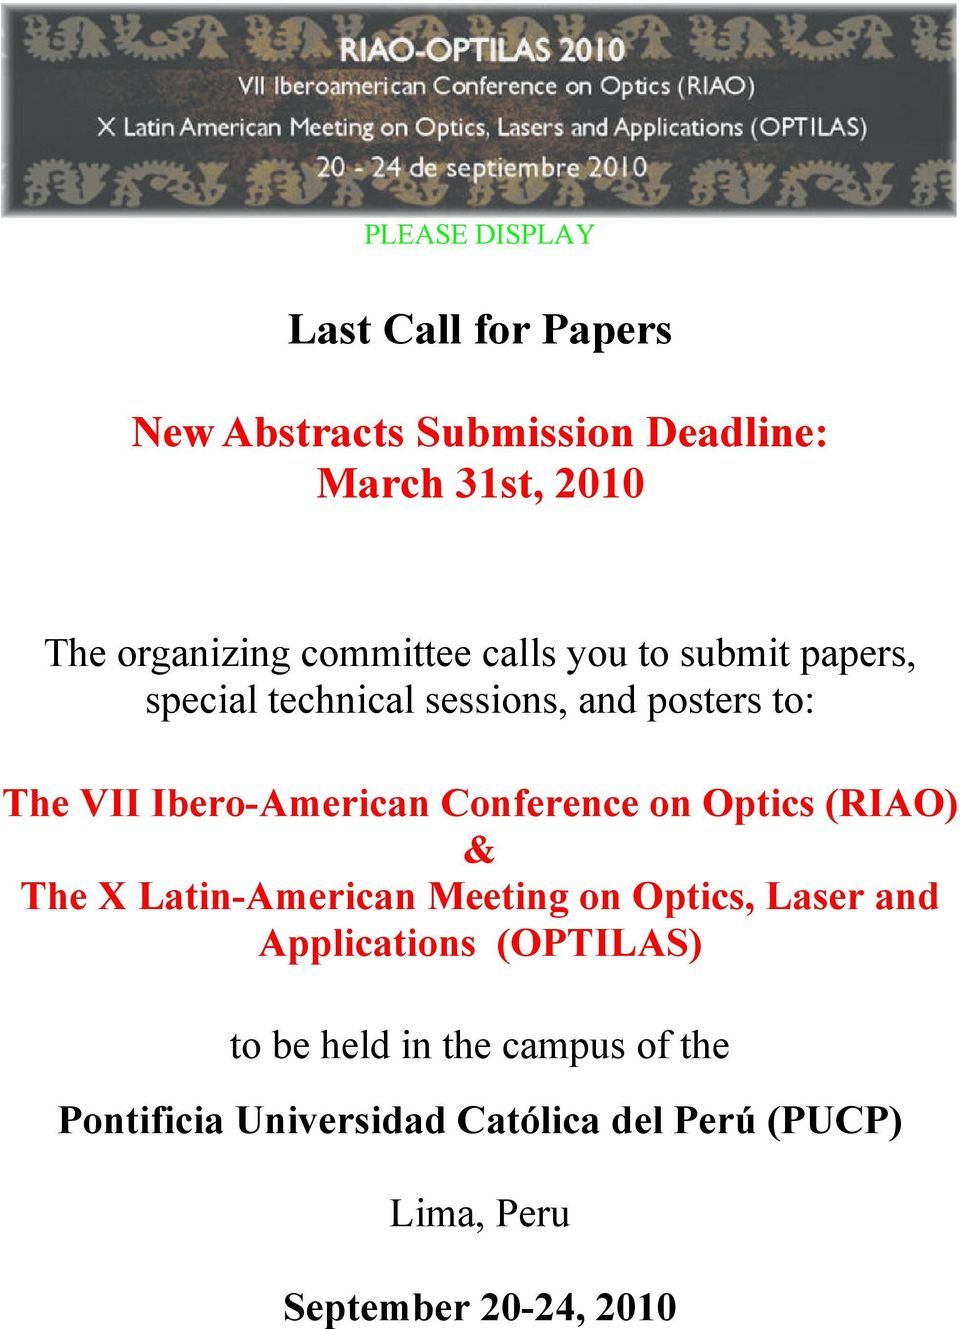 Conference on Optics (RIAO) & The X Latin-American Meeting on Optics, Laser and Applications (OPTILAS) to